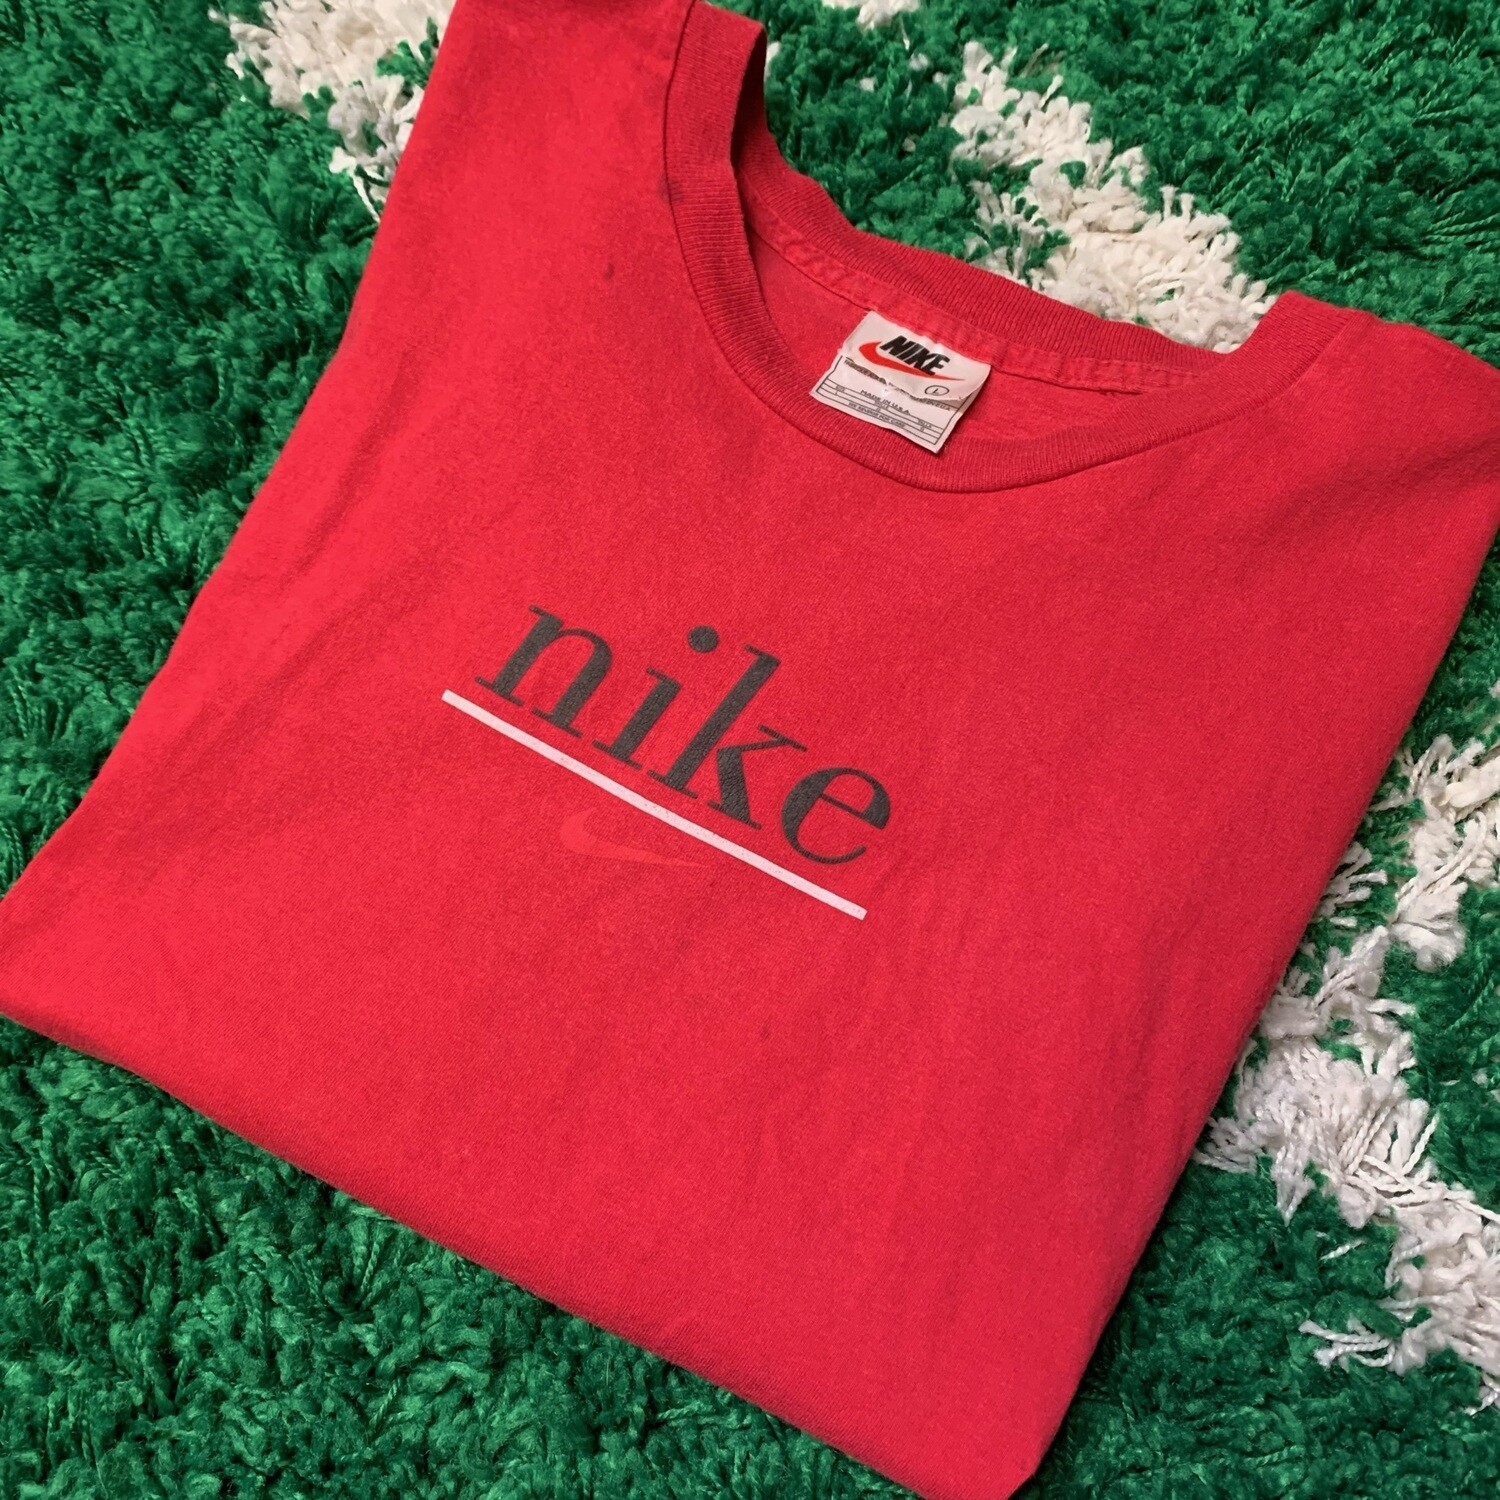 Nike Spellout Tee Red Size Medium